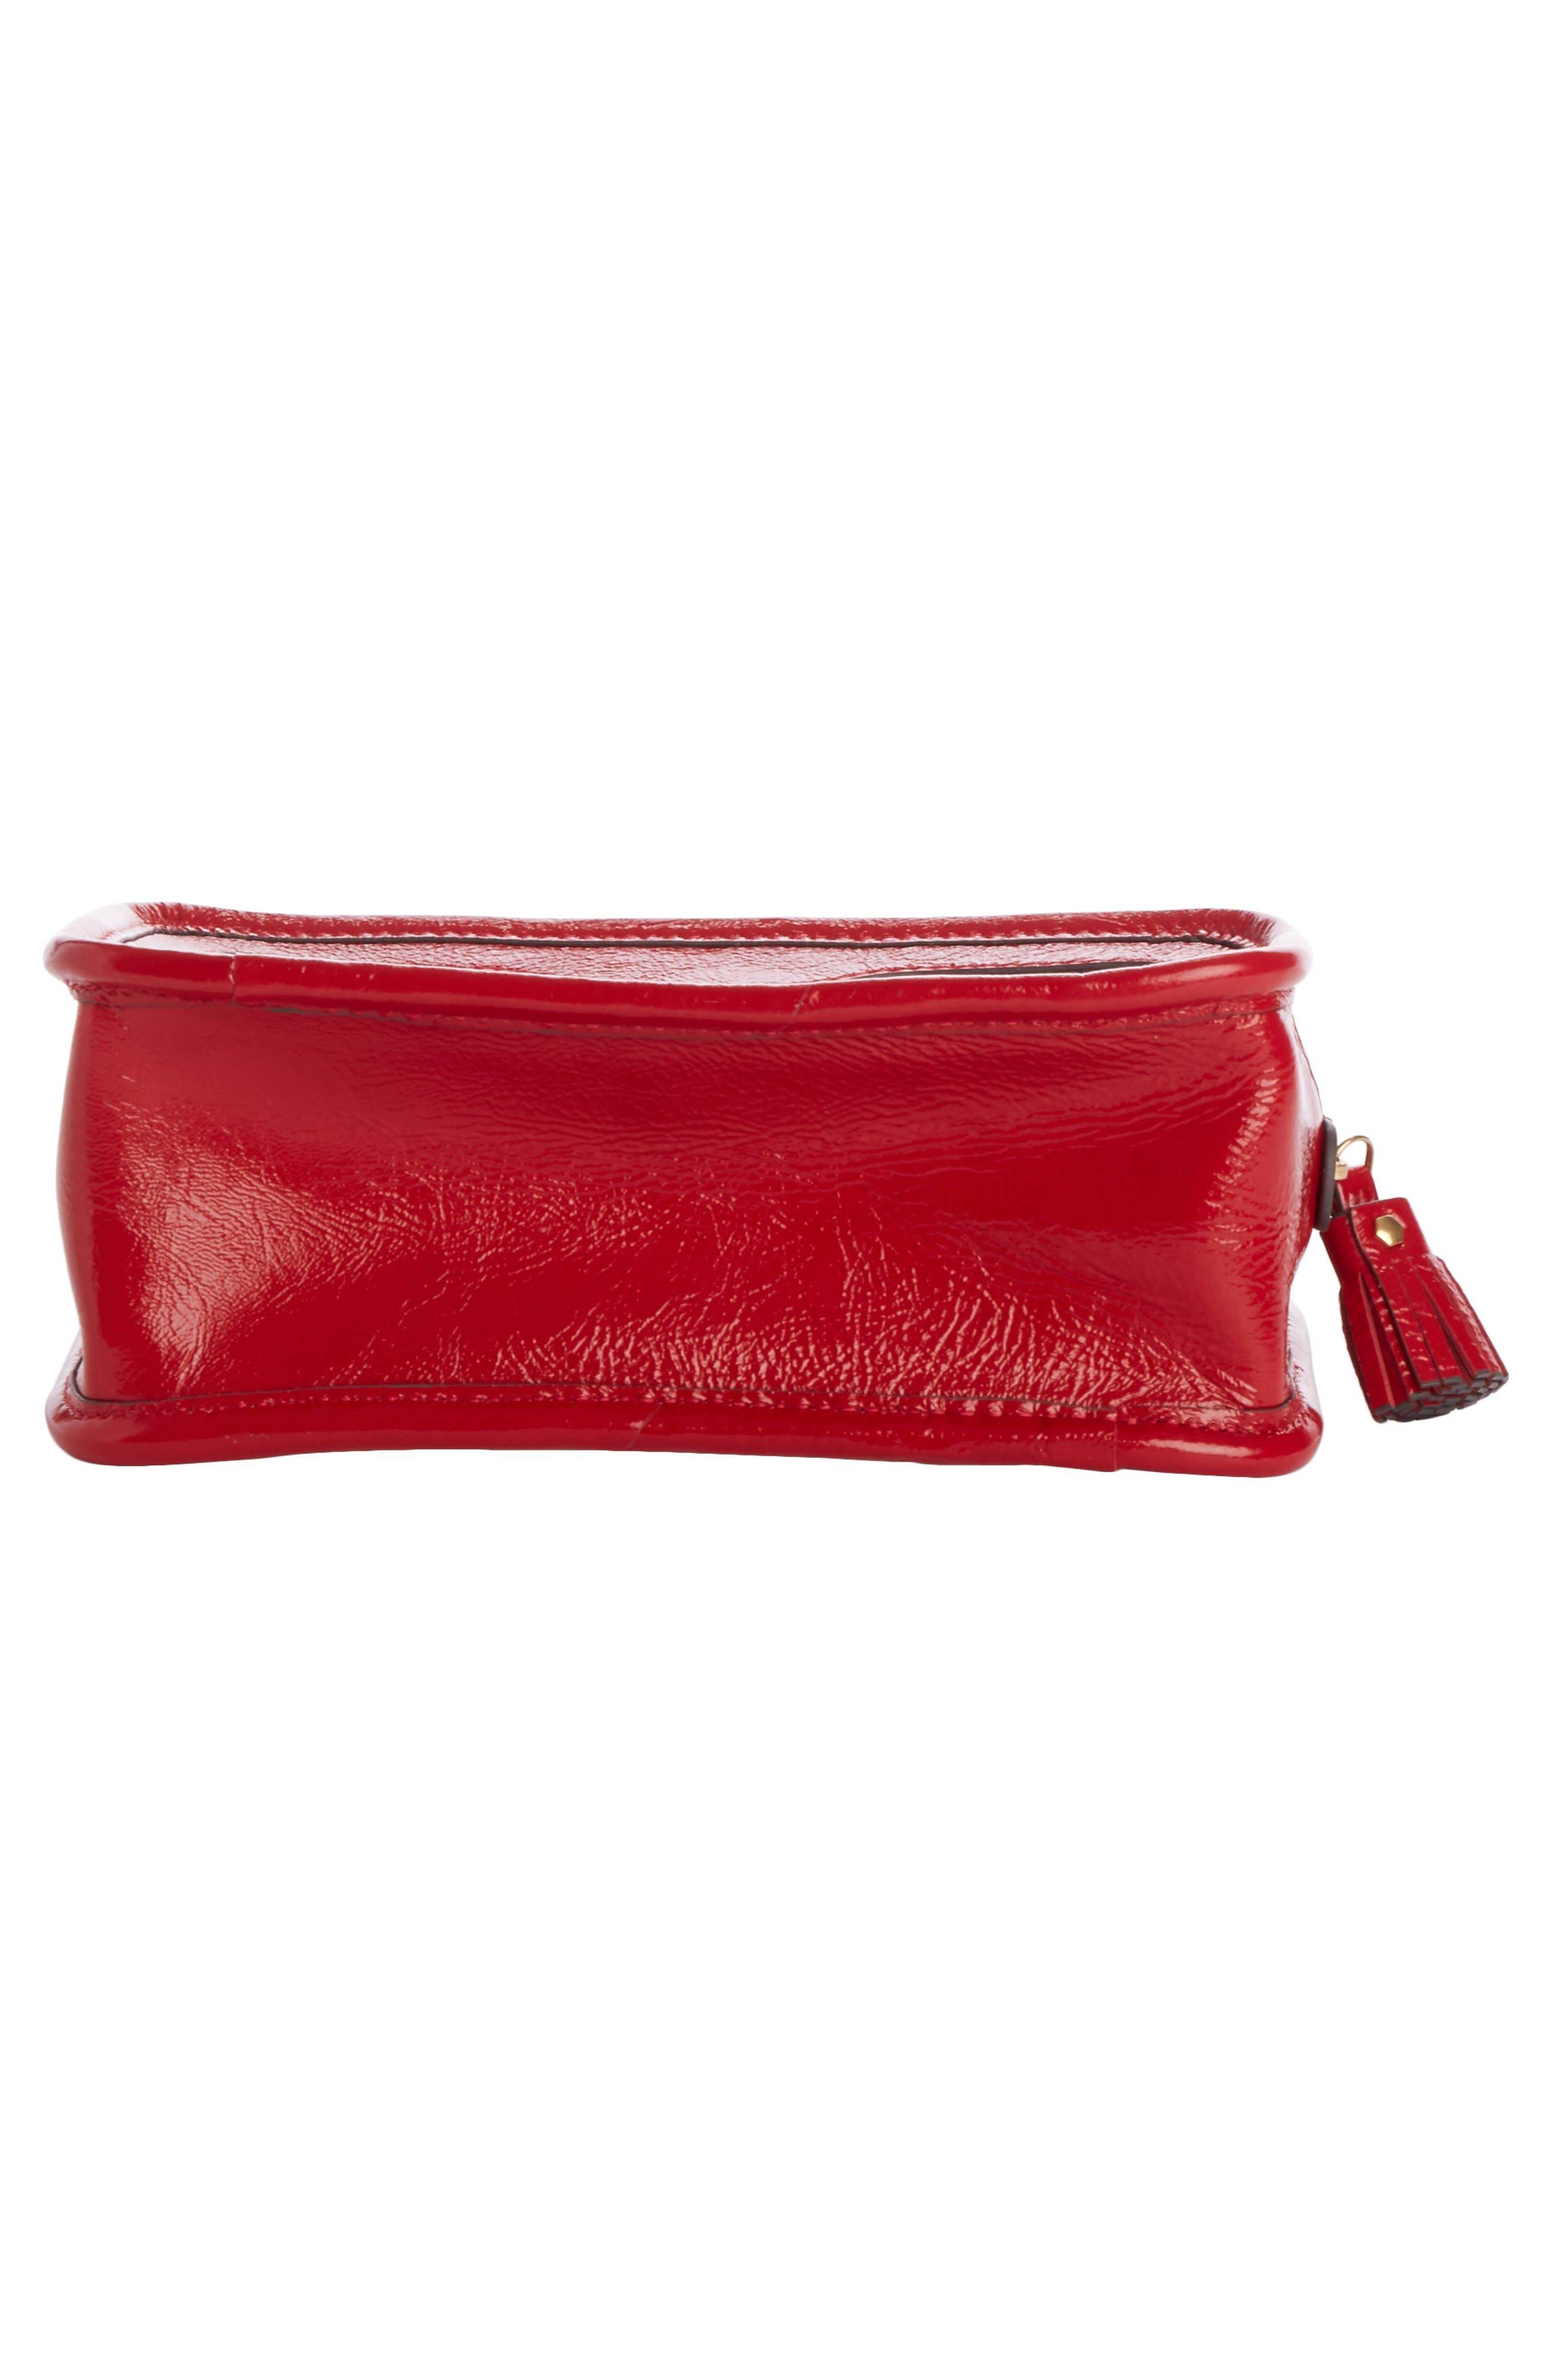 Rainy Day Cosmetic Bag,                             Alternate thumbnail 4, color,                             Red